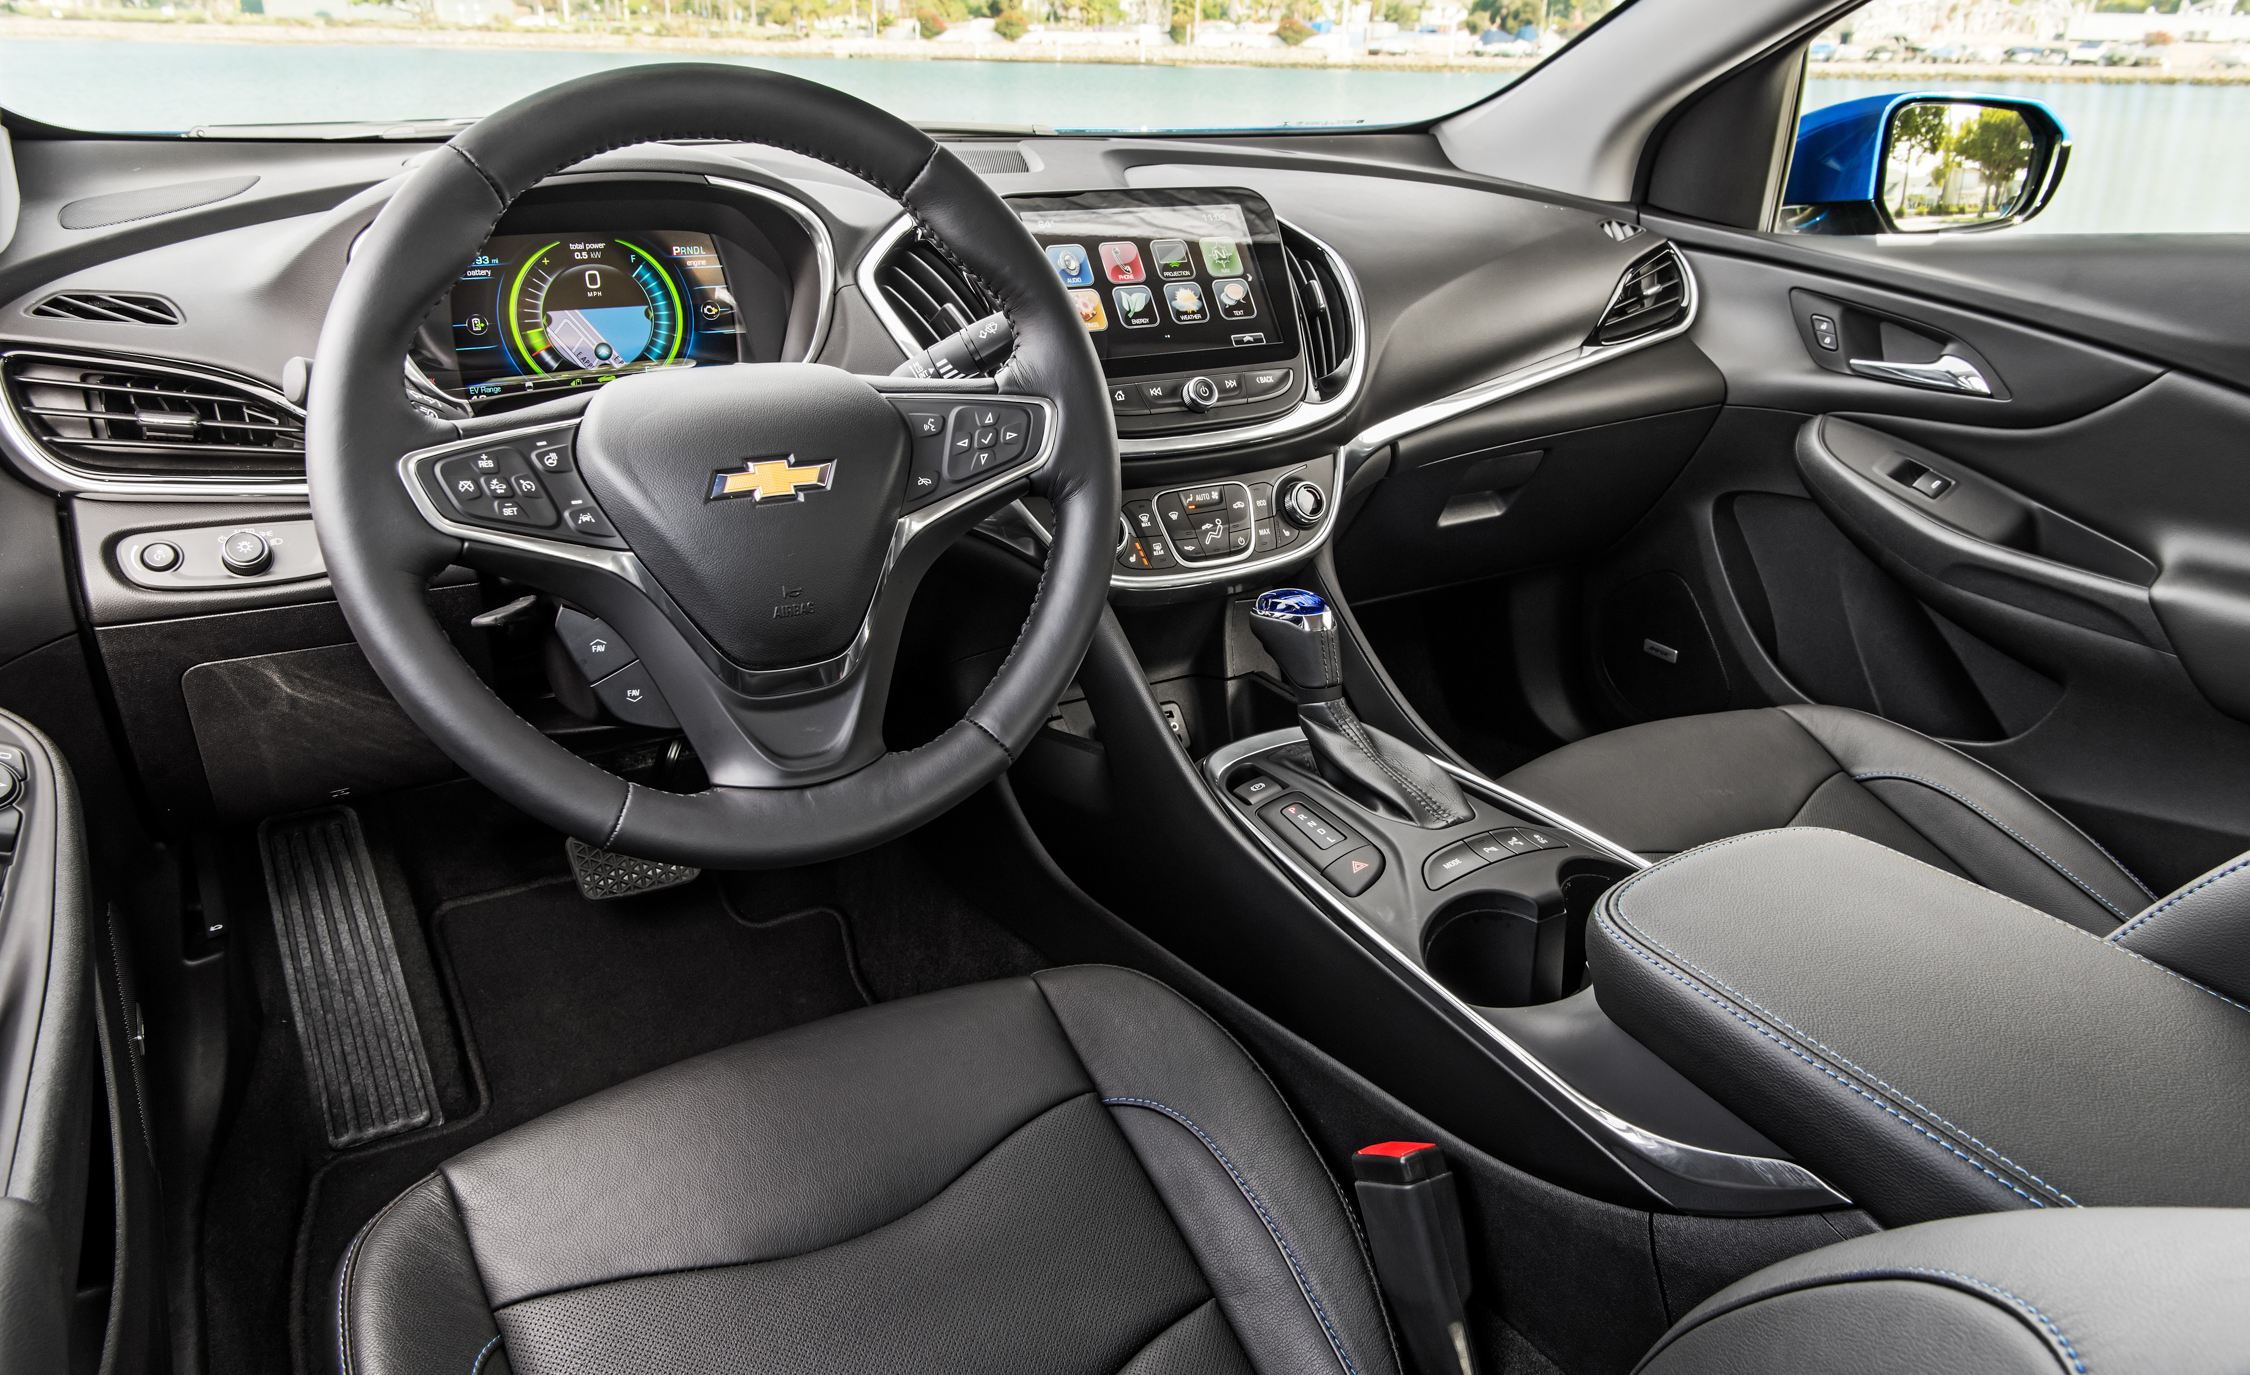 2017 Chevrolet Volt Interior Dashboard And Steering (View 9 of 16)